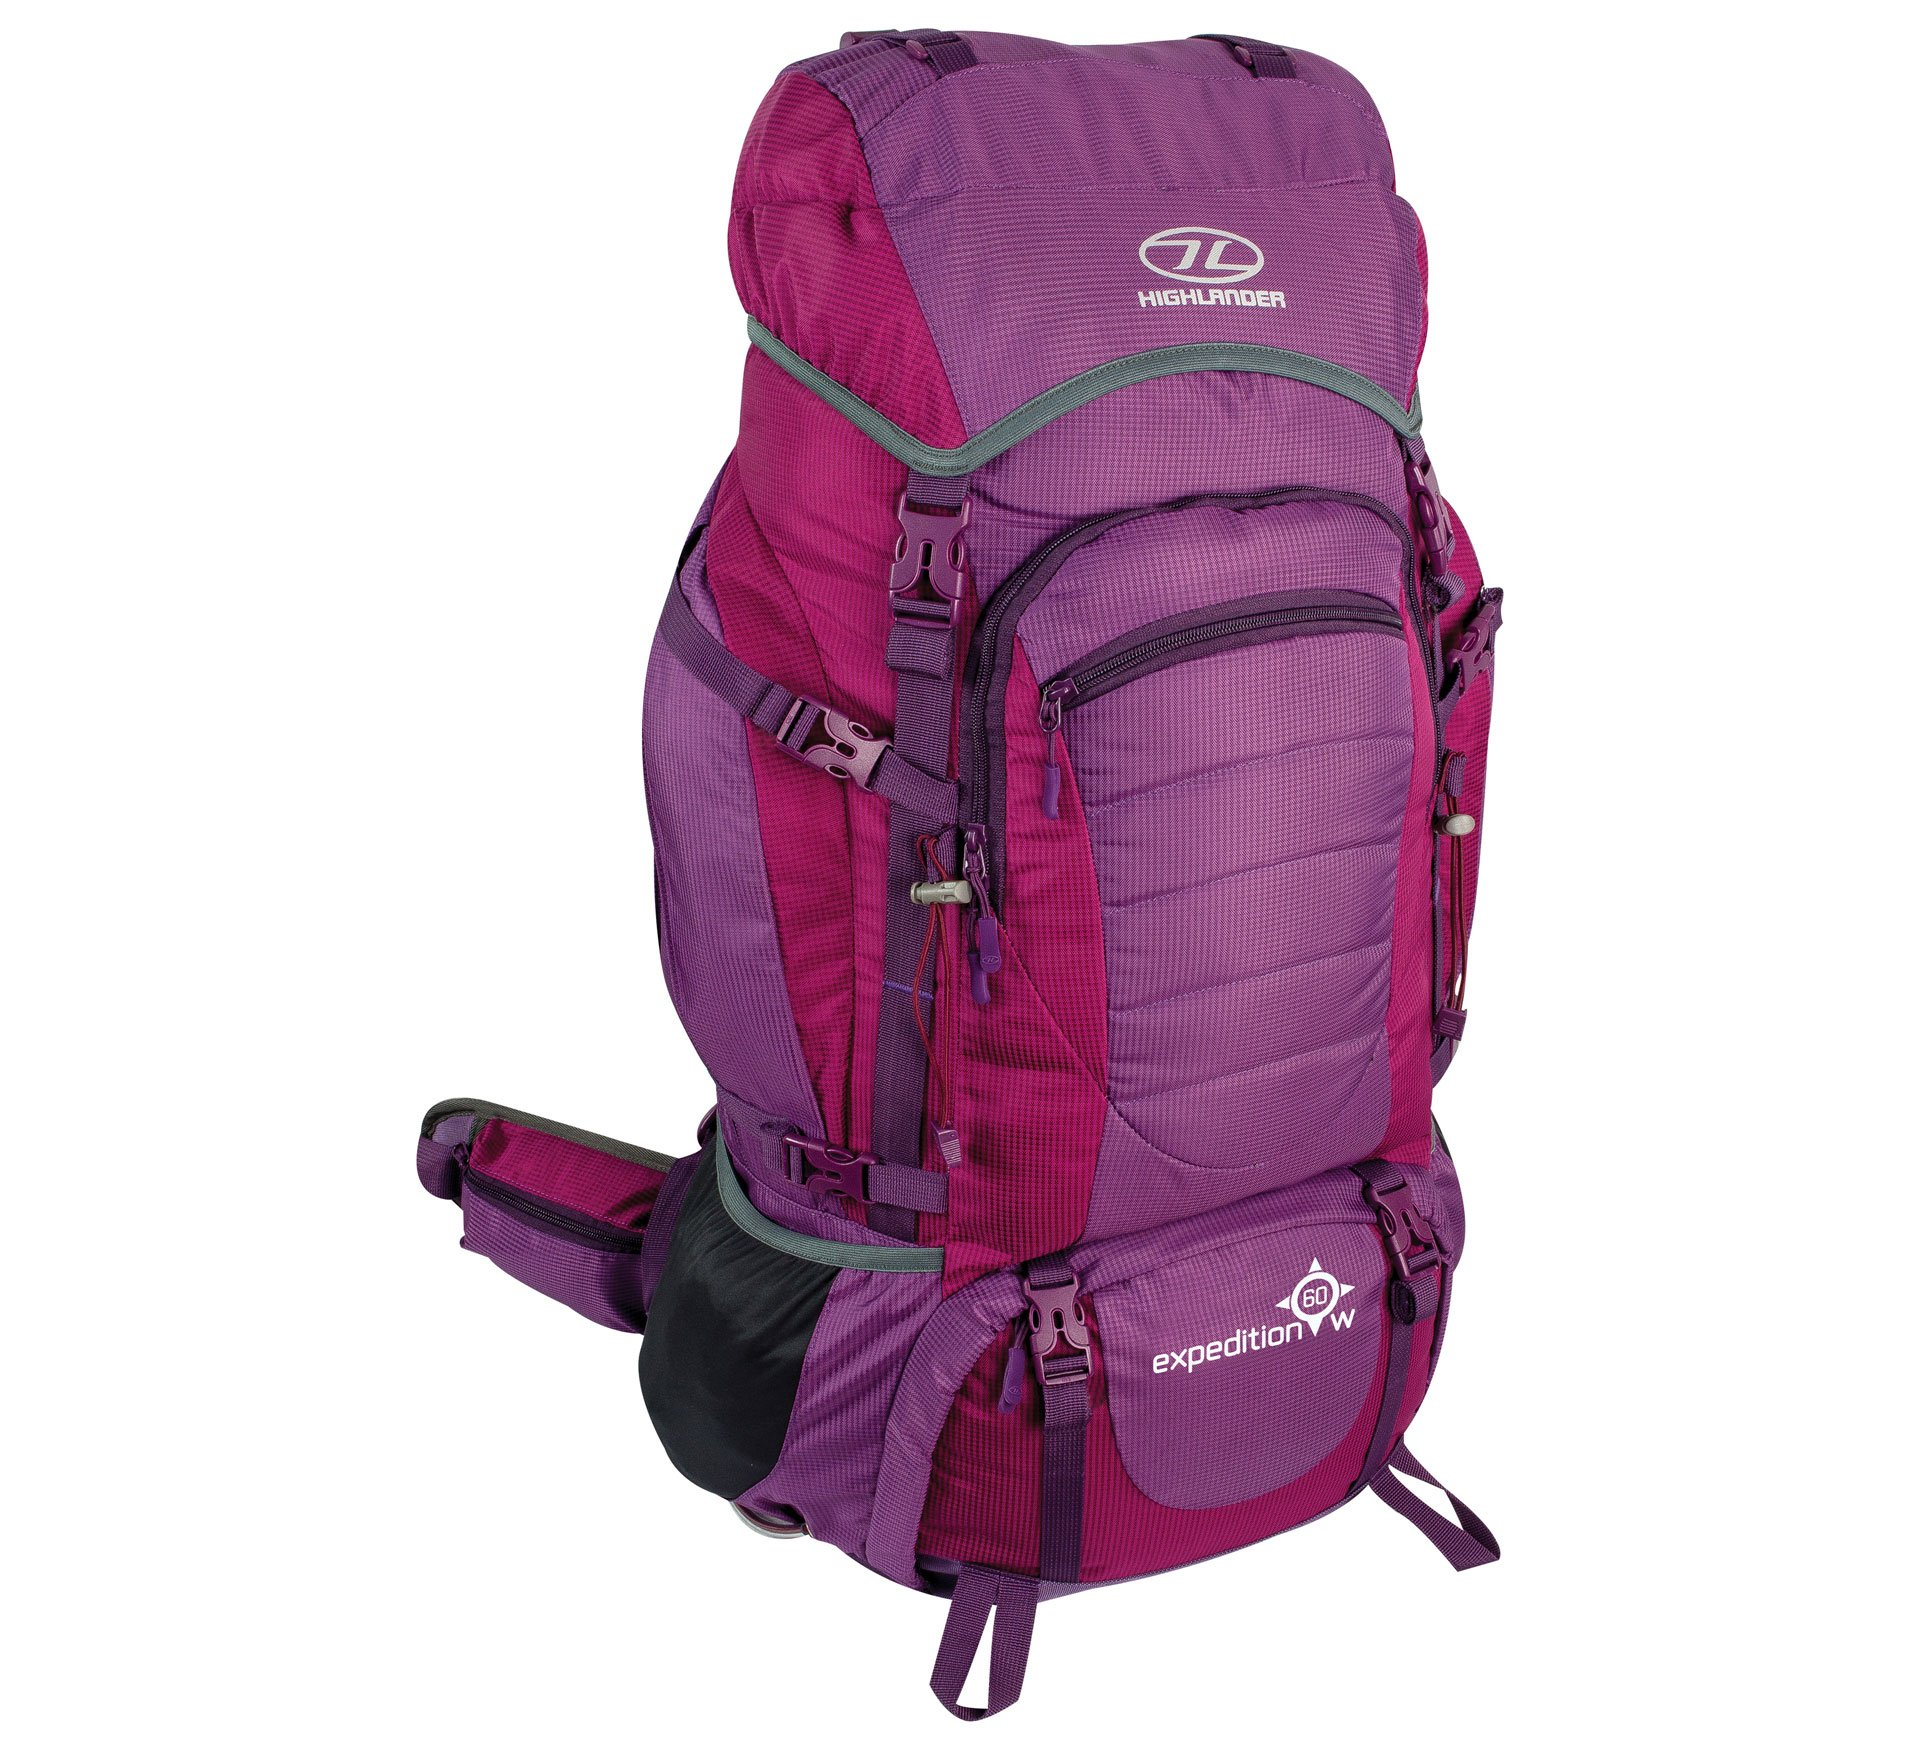 Highlander Expedition Rucksack ꟷ 60L, 65L & 85L Quality Backpack ꟷ Ideal for Hiking, Backpacking, DofE, Scouting Trips ꟷ Men & Women ꟷ Blue, Black, Red & Purple 1